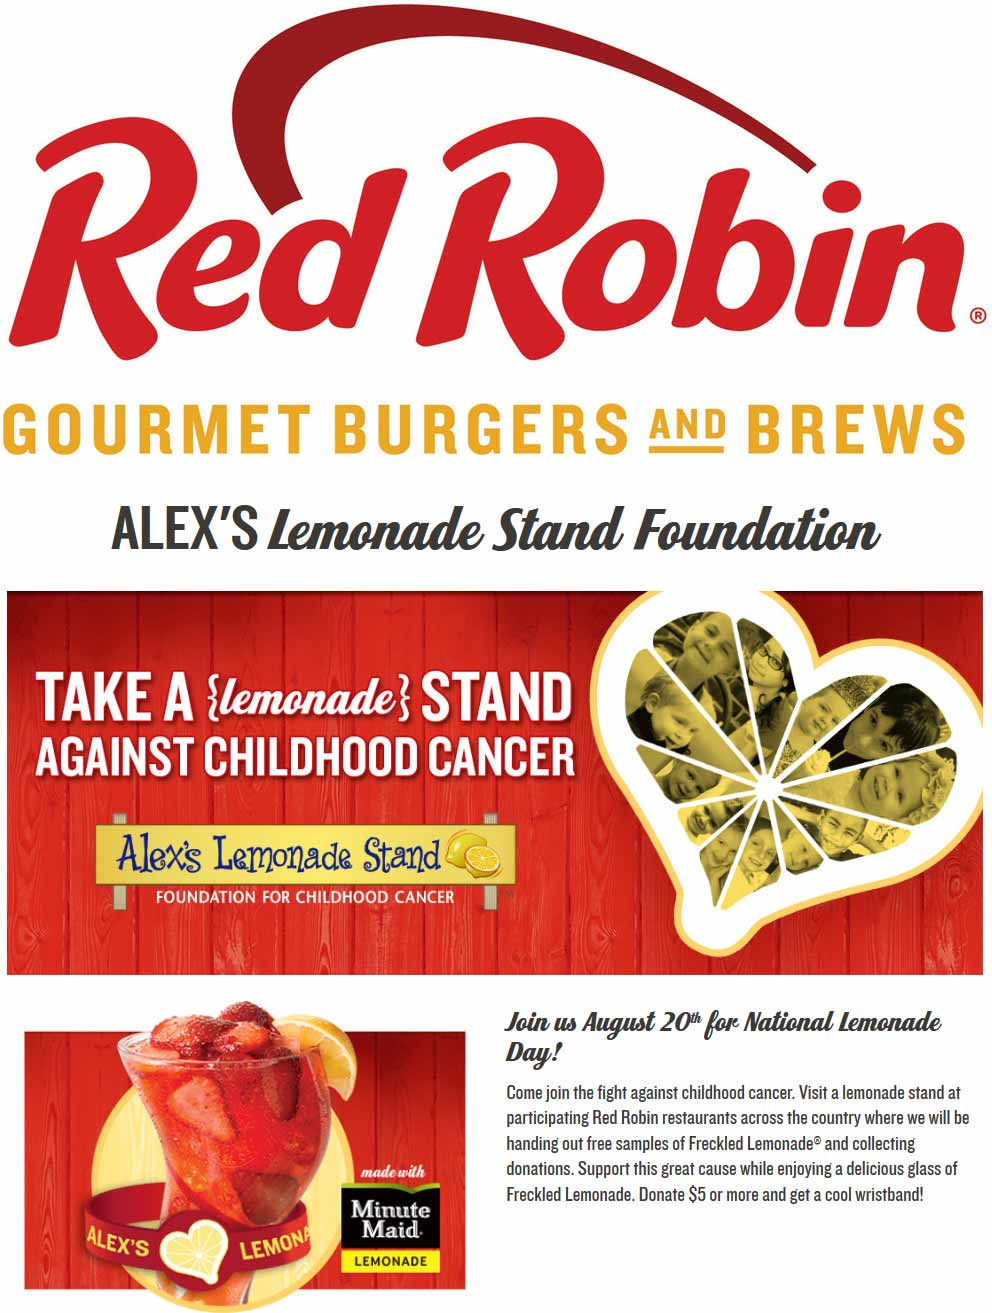 Red Robin Coupon April 2017 Free lemonade for charity Saturday at Red Robin restaurants